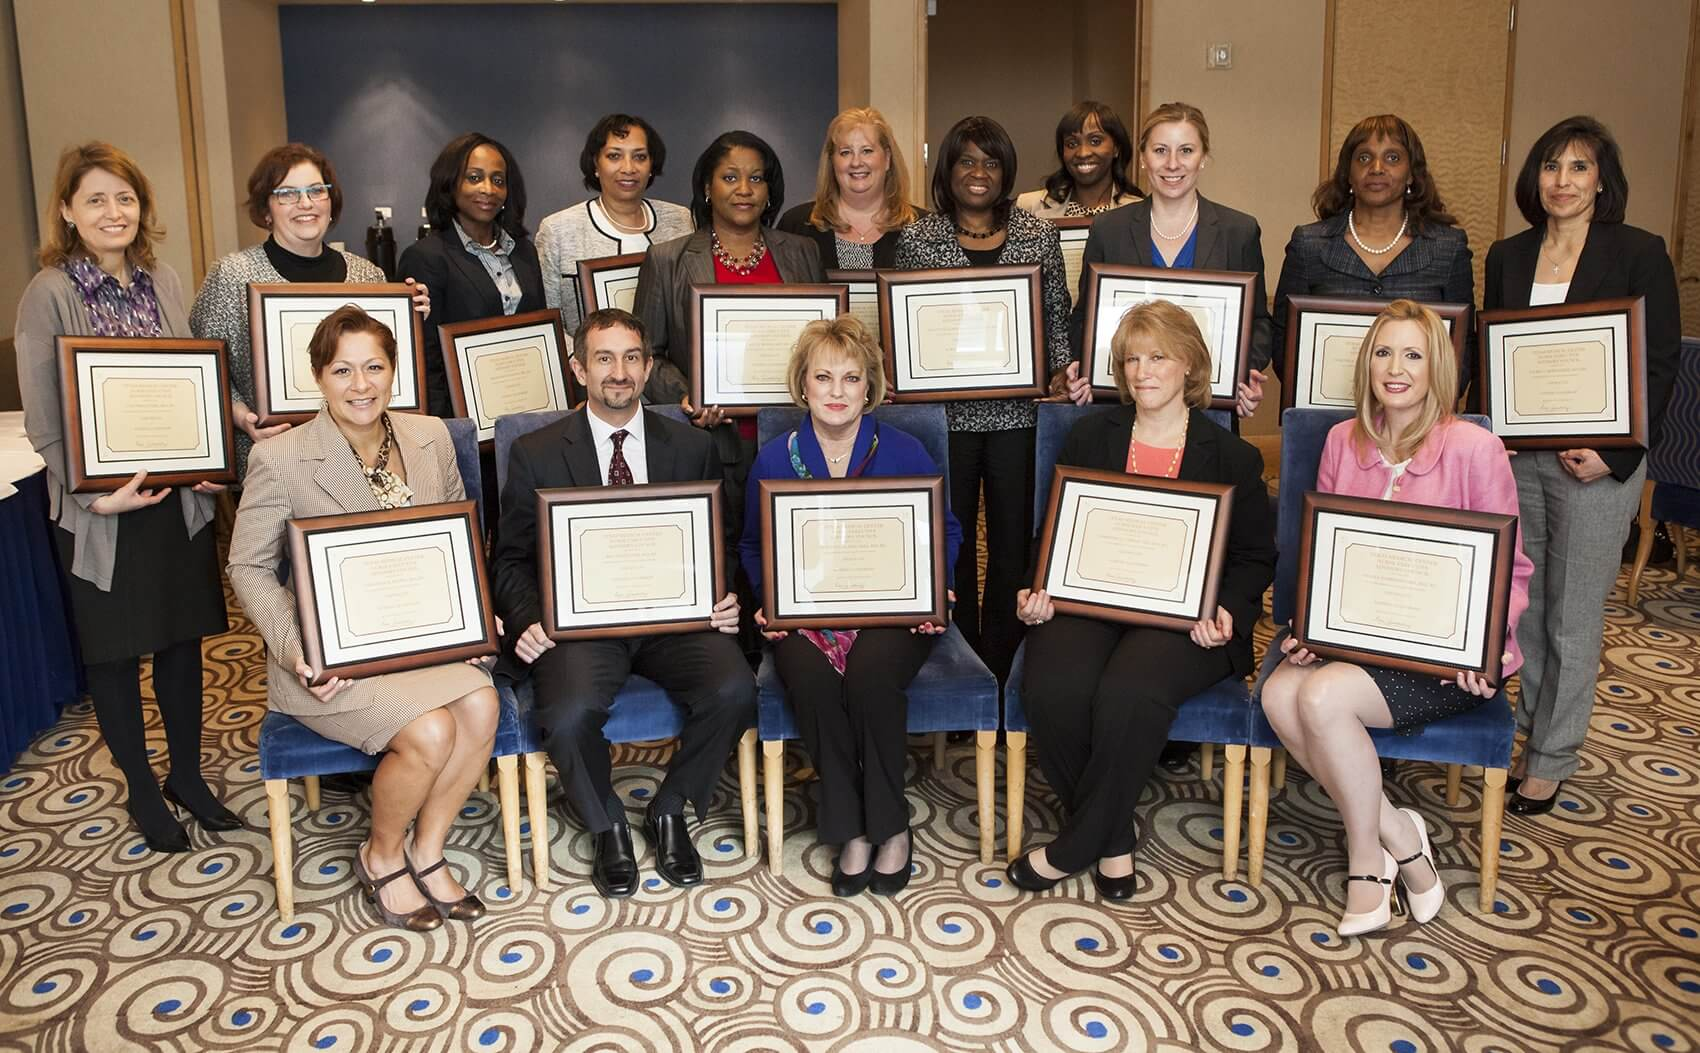 The graduating class is comprised of 16 seasoned nurse leaders who were hand selected by their CEO or CNO to participate in the program (Credit: Scott Dalton)